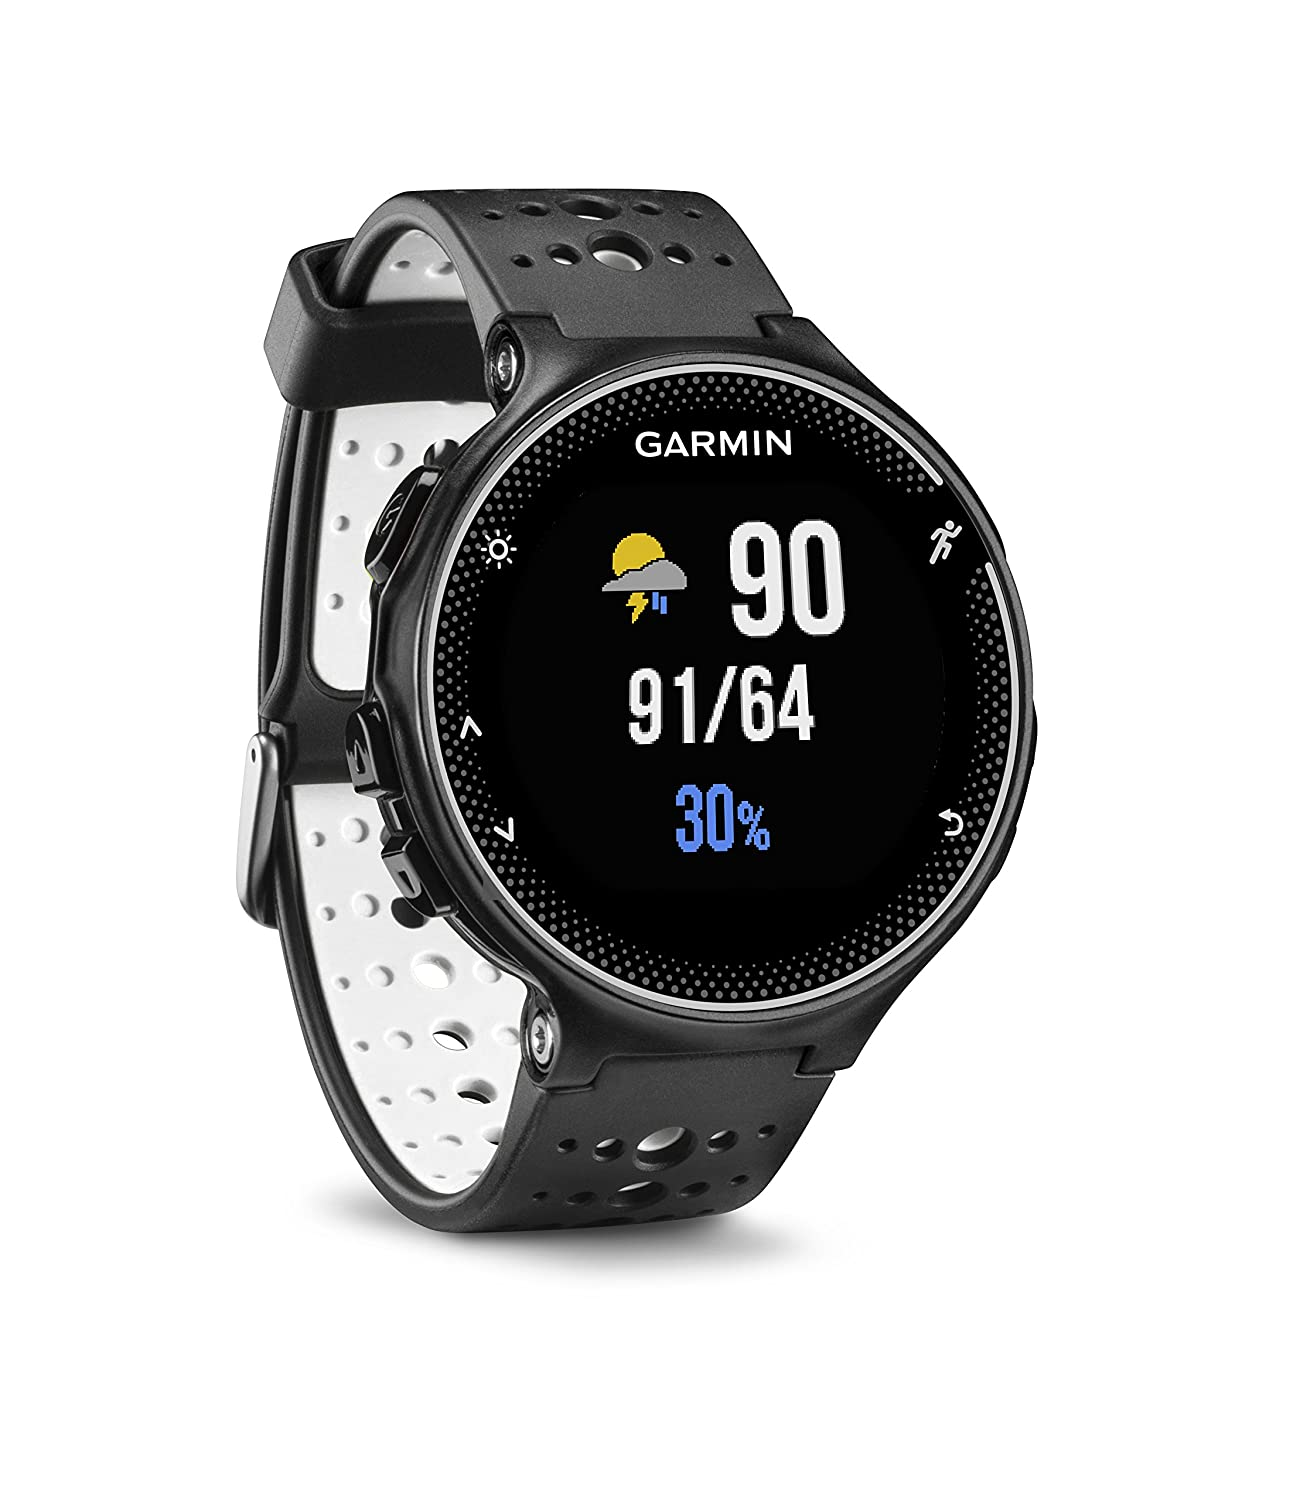 product archives gps running watch garmin sports category forerunner buckley watches john